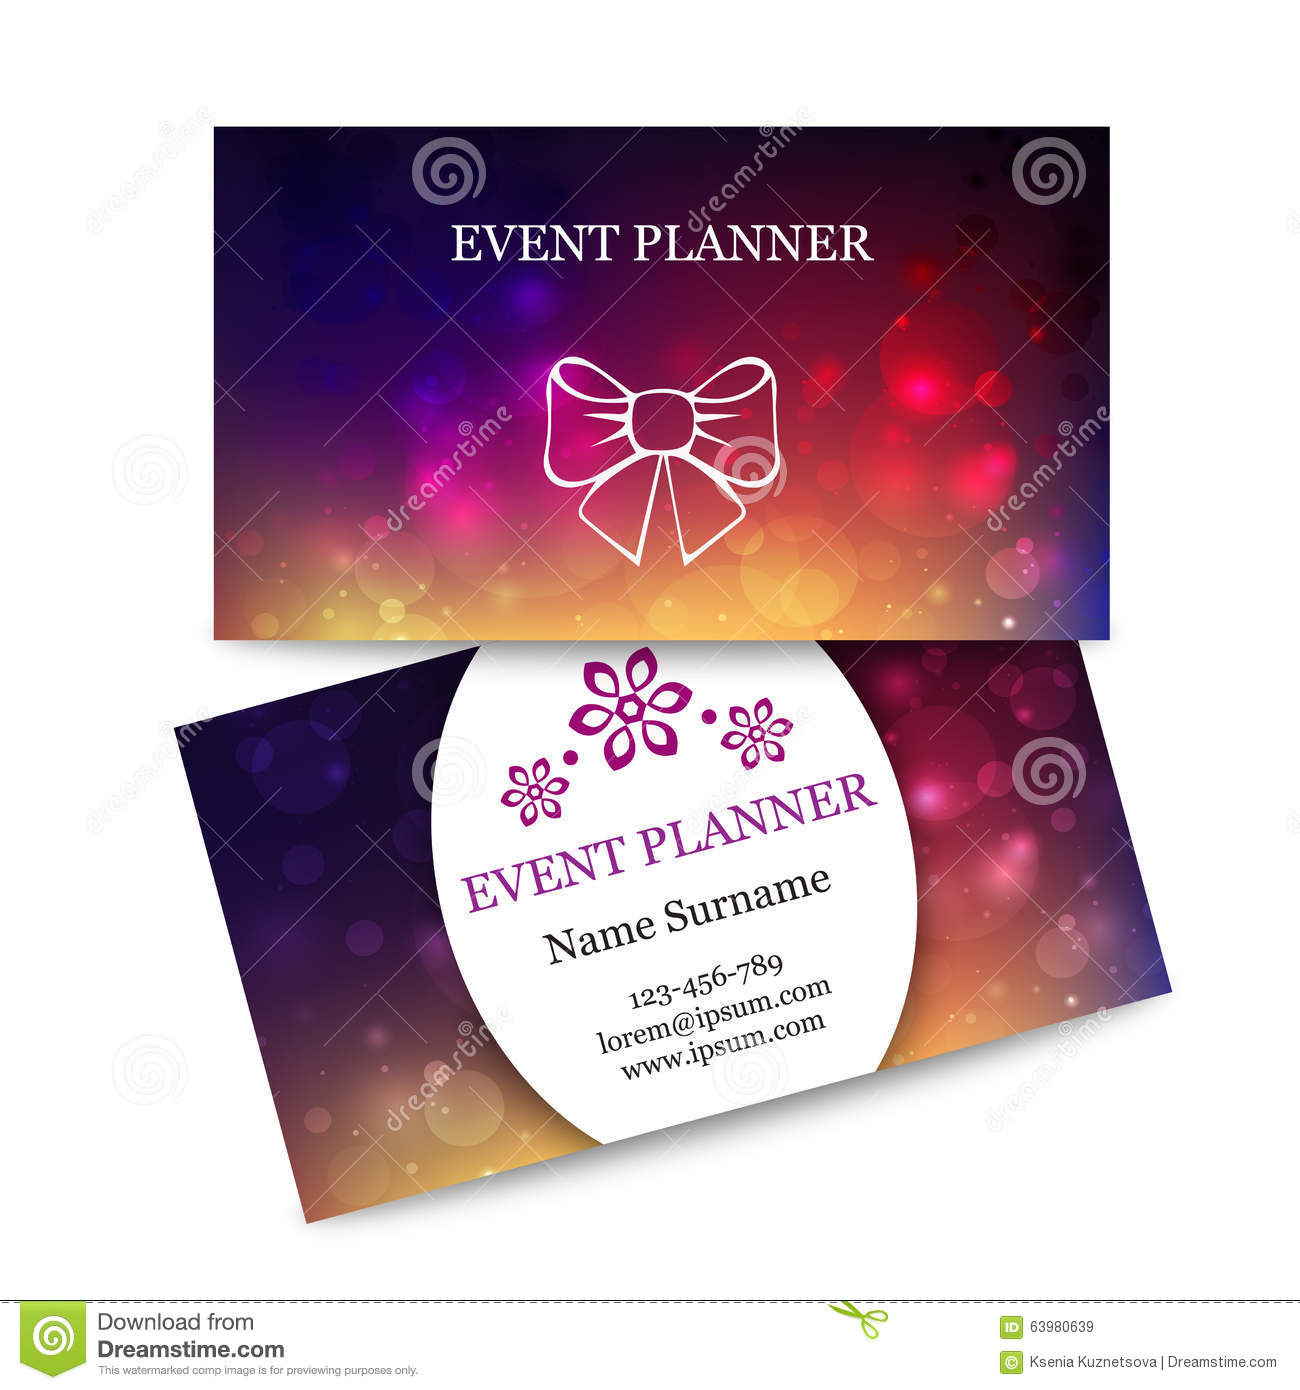 Template colorful business cards for event planner stock for Sample event planner business cards